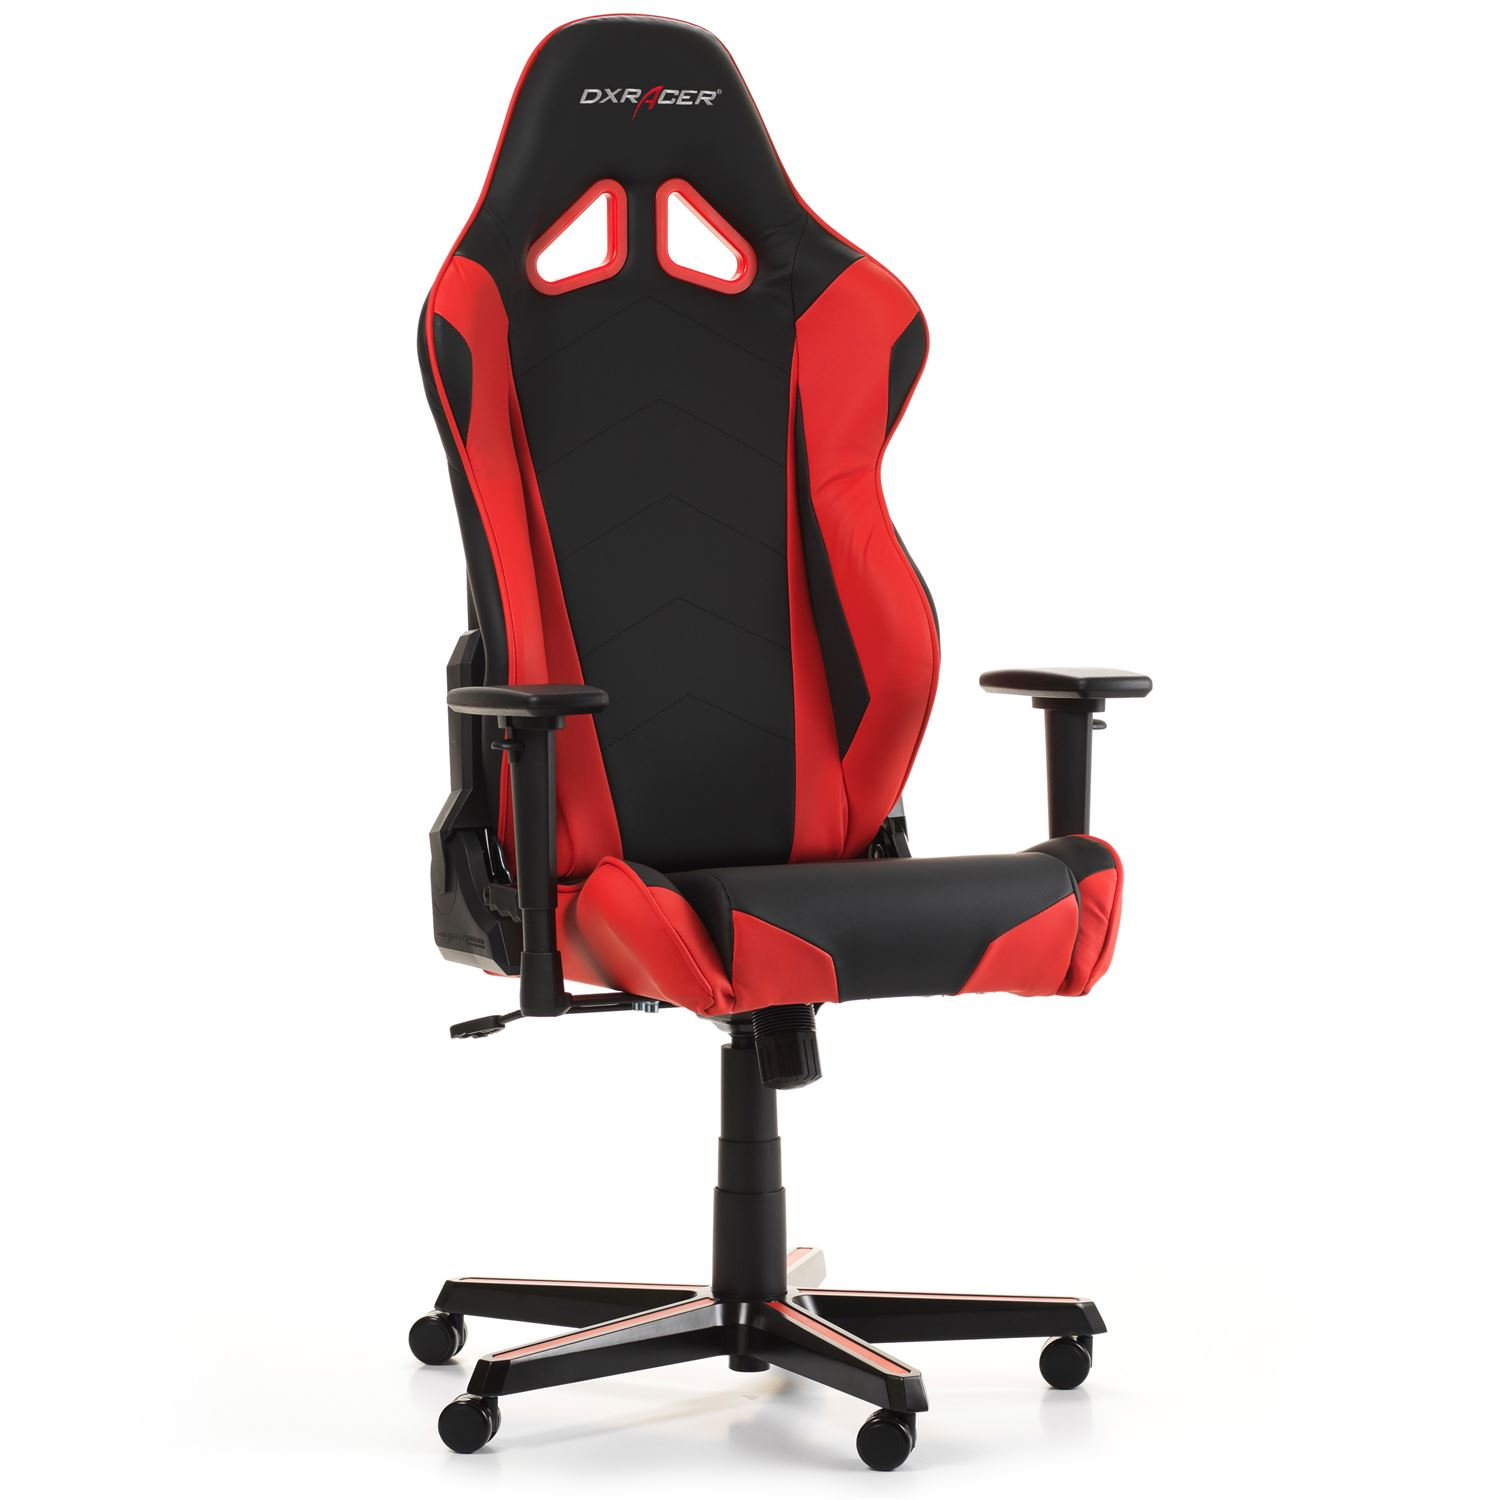 dx racing gaming chair wedding covers with arms dxracer r0 nr køb hos webdanes dk